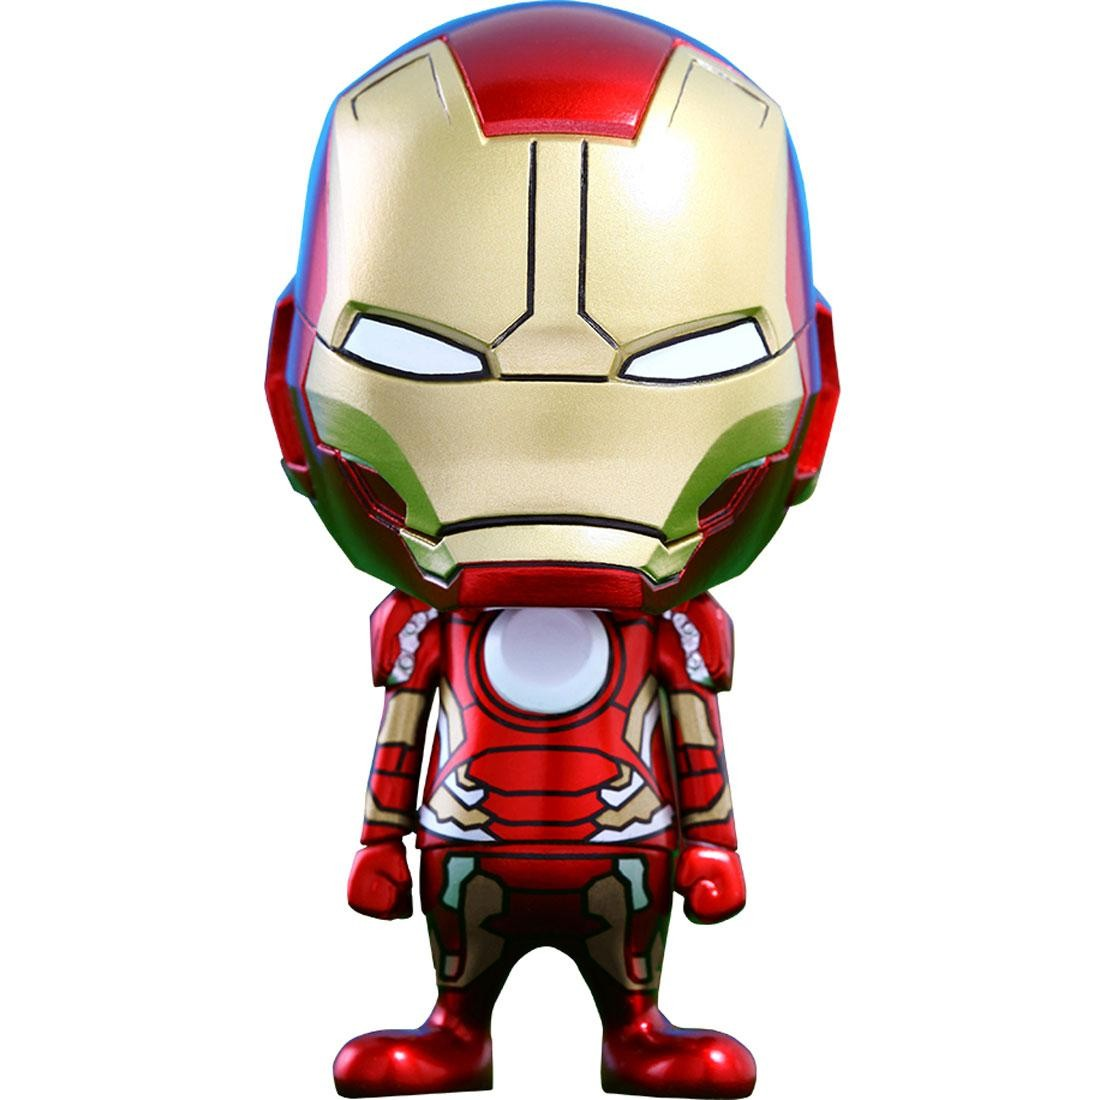 Hot Toys Iron Man Mark XLIII Avengers Age of Ultron Cosbaby Series 1 4 inches Vinyl Figure (red)